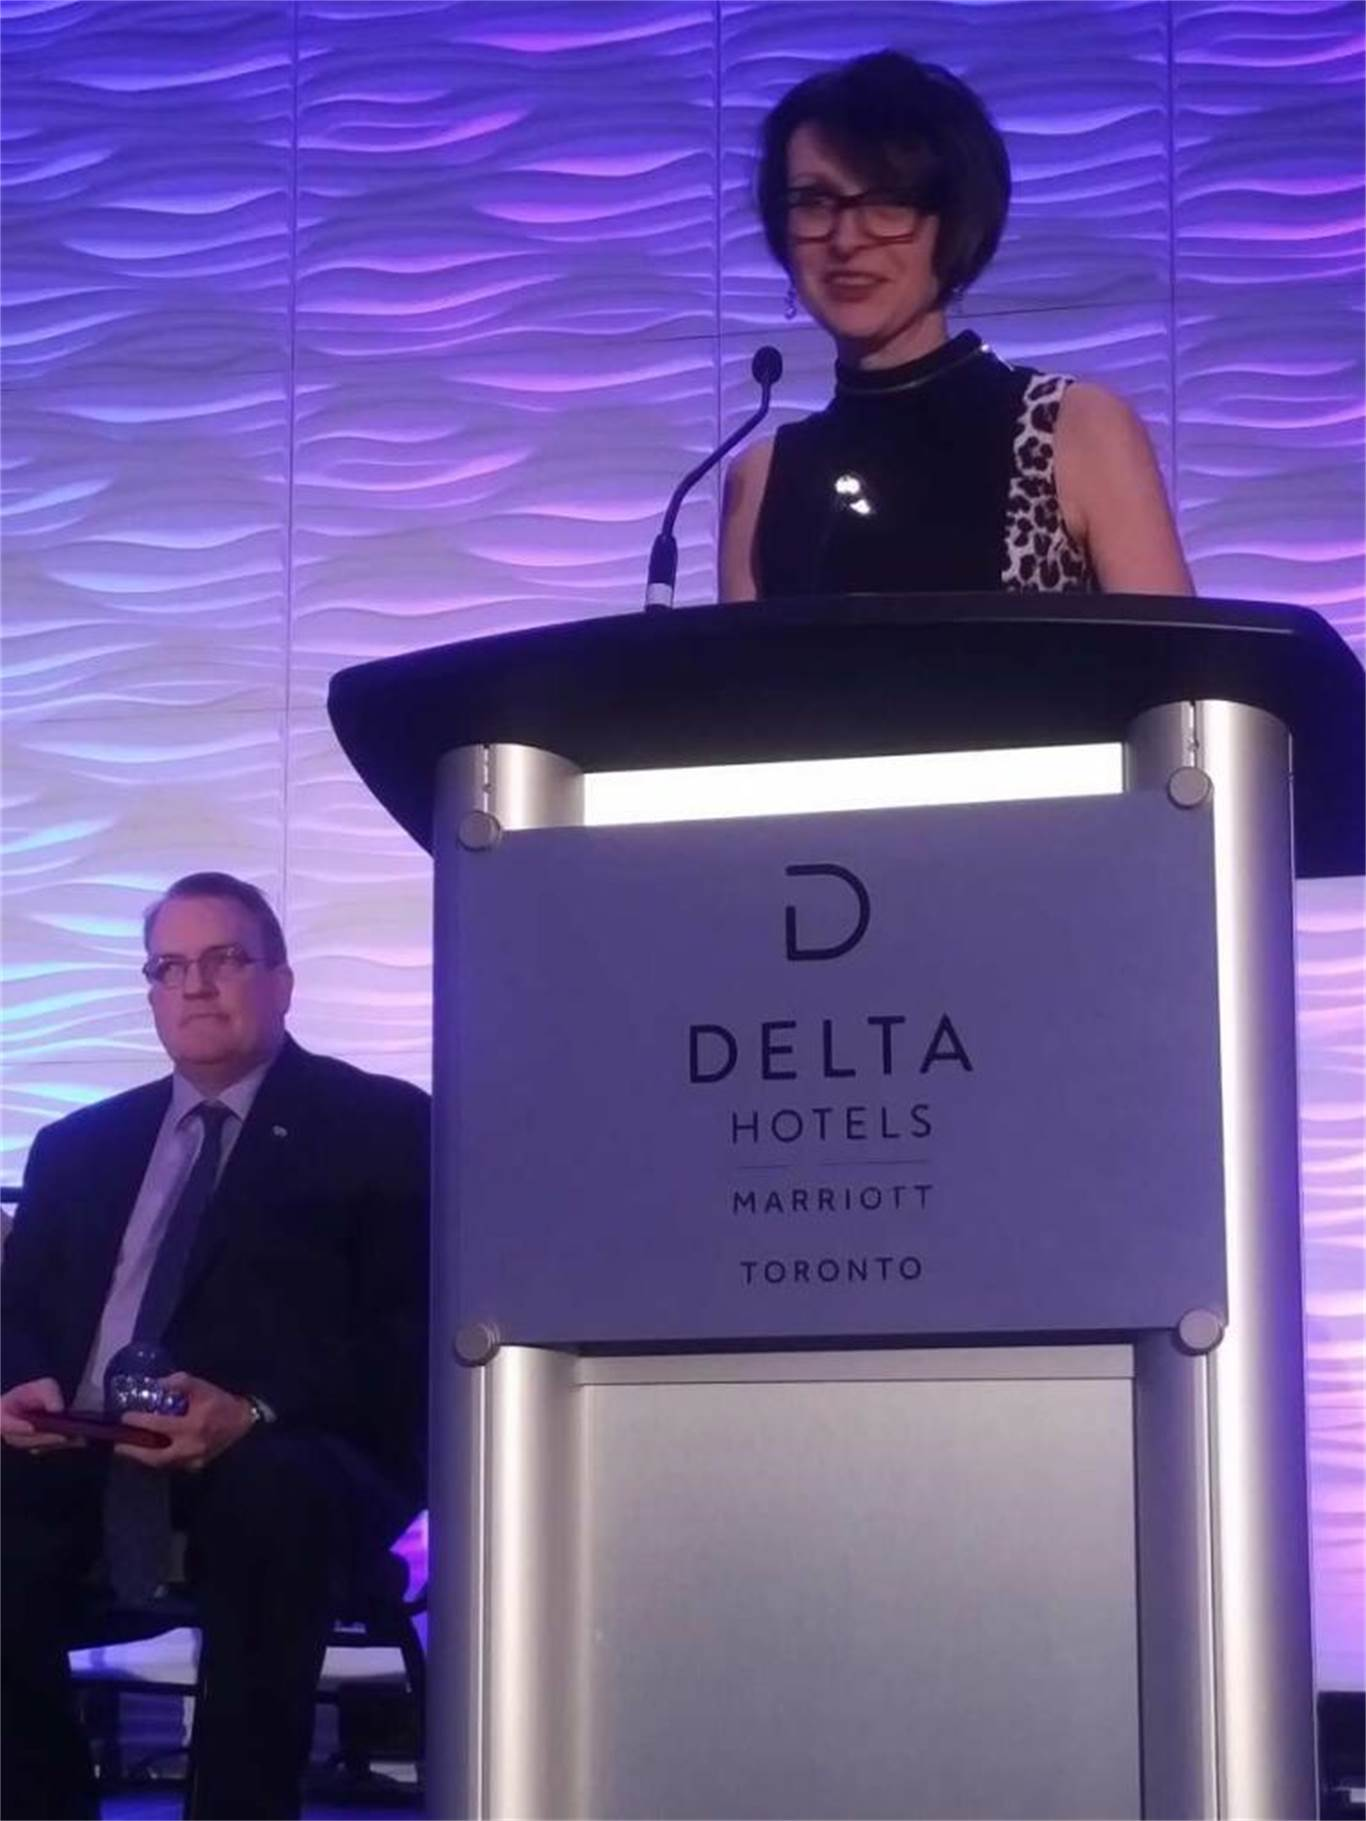 Marisa DiCenso was presented with a Distinguished Service Award by the Catholic Principals' Council of Ontario at a Gala Dinner & Awards Ceremony in Toronto on April 20.